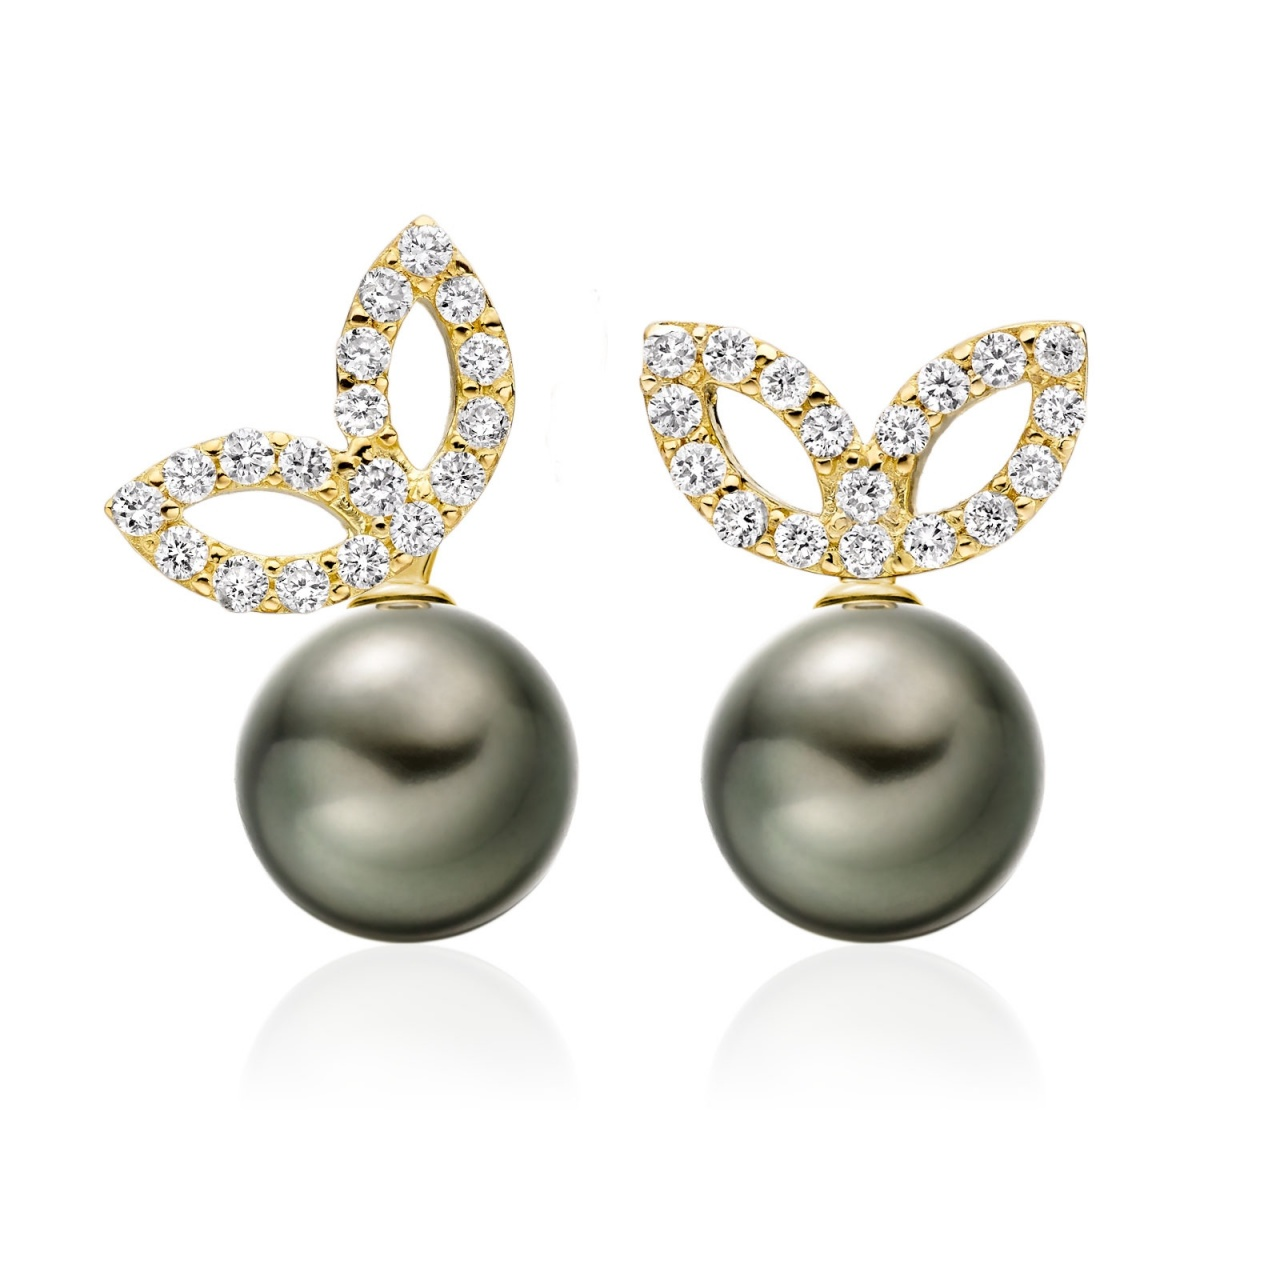 Enchanted Diamond Studs in Yellow Gold with Tahitian Pearls-TEGRYG0488-1